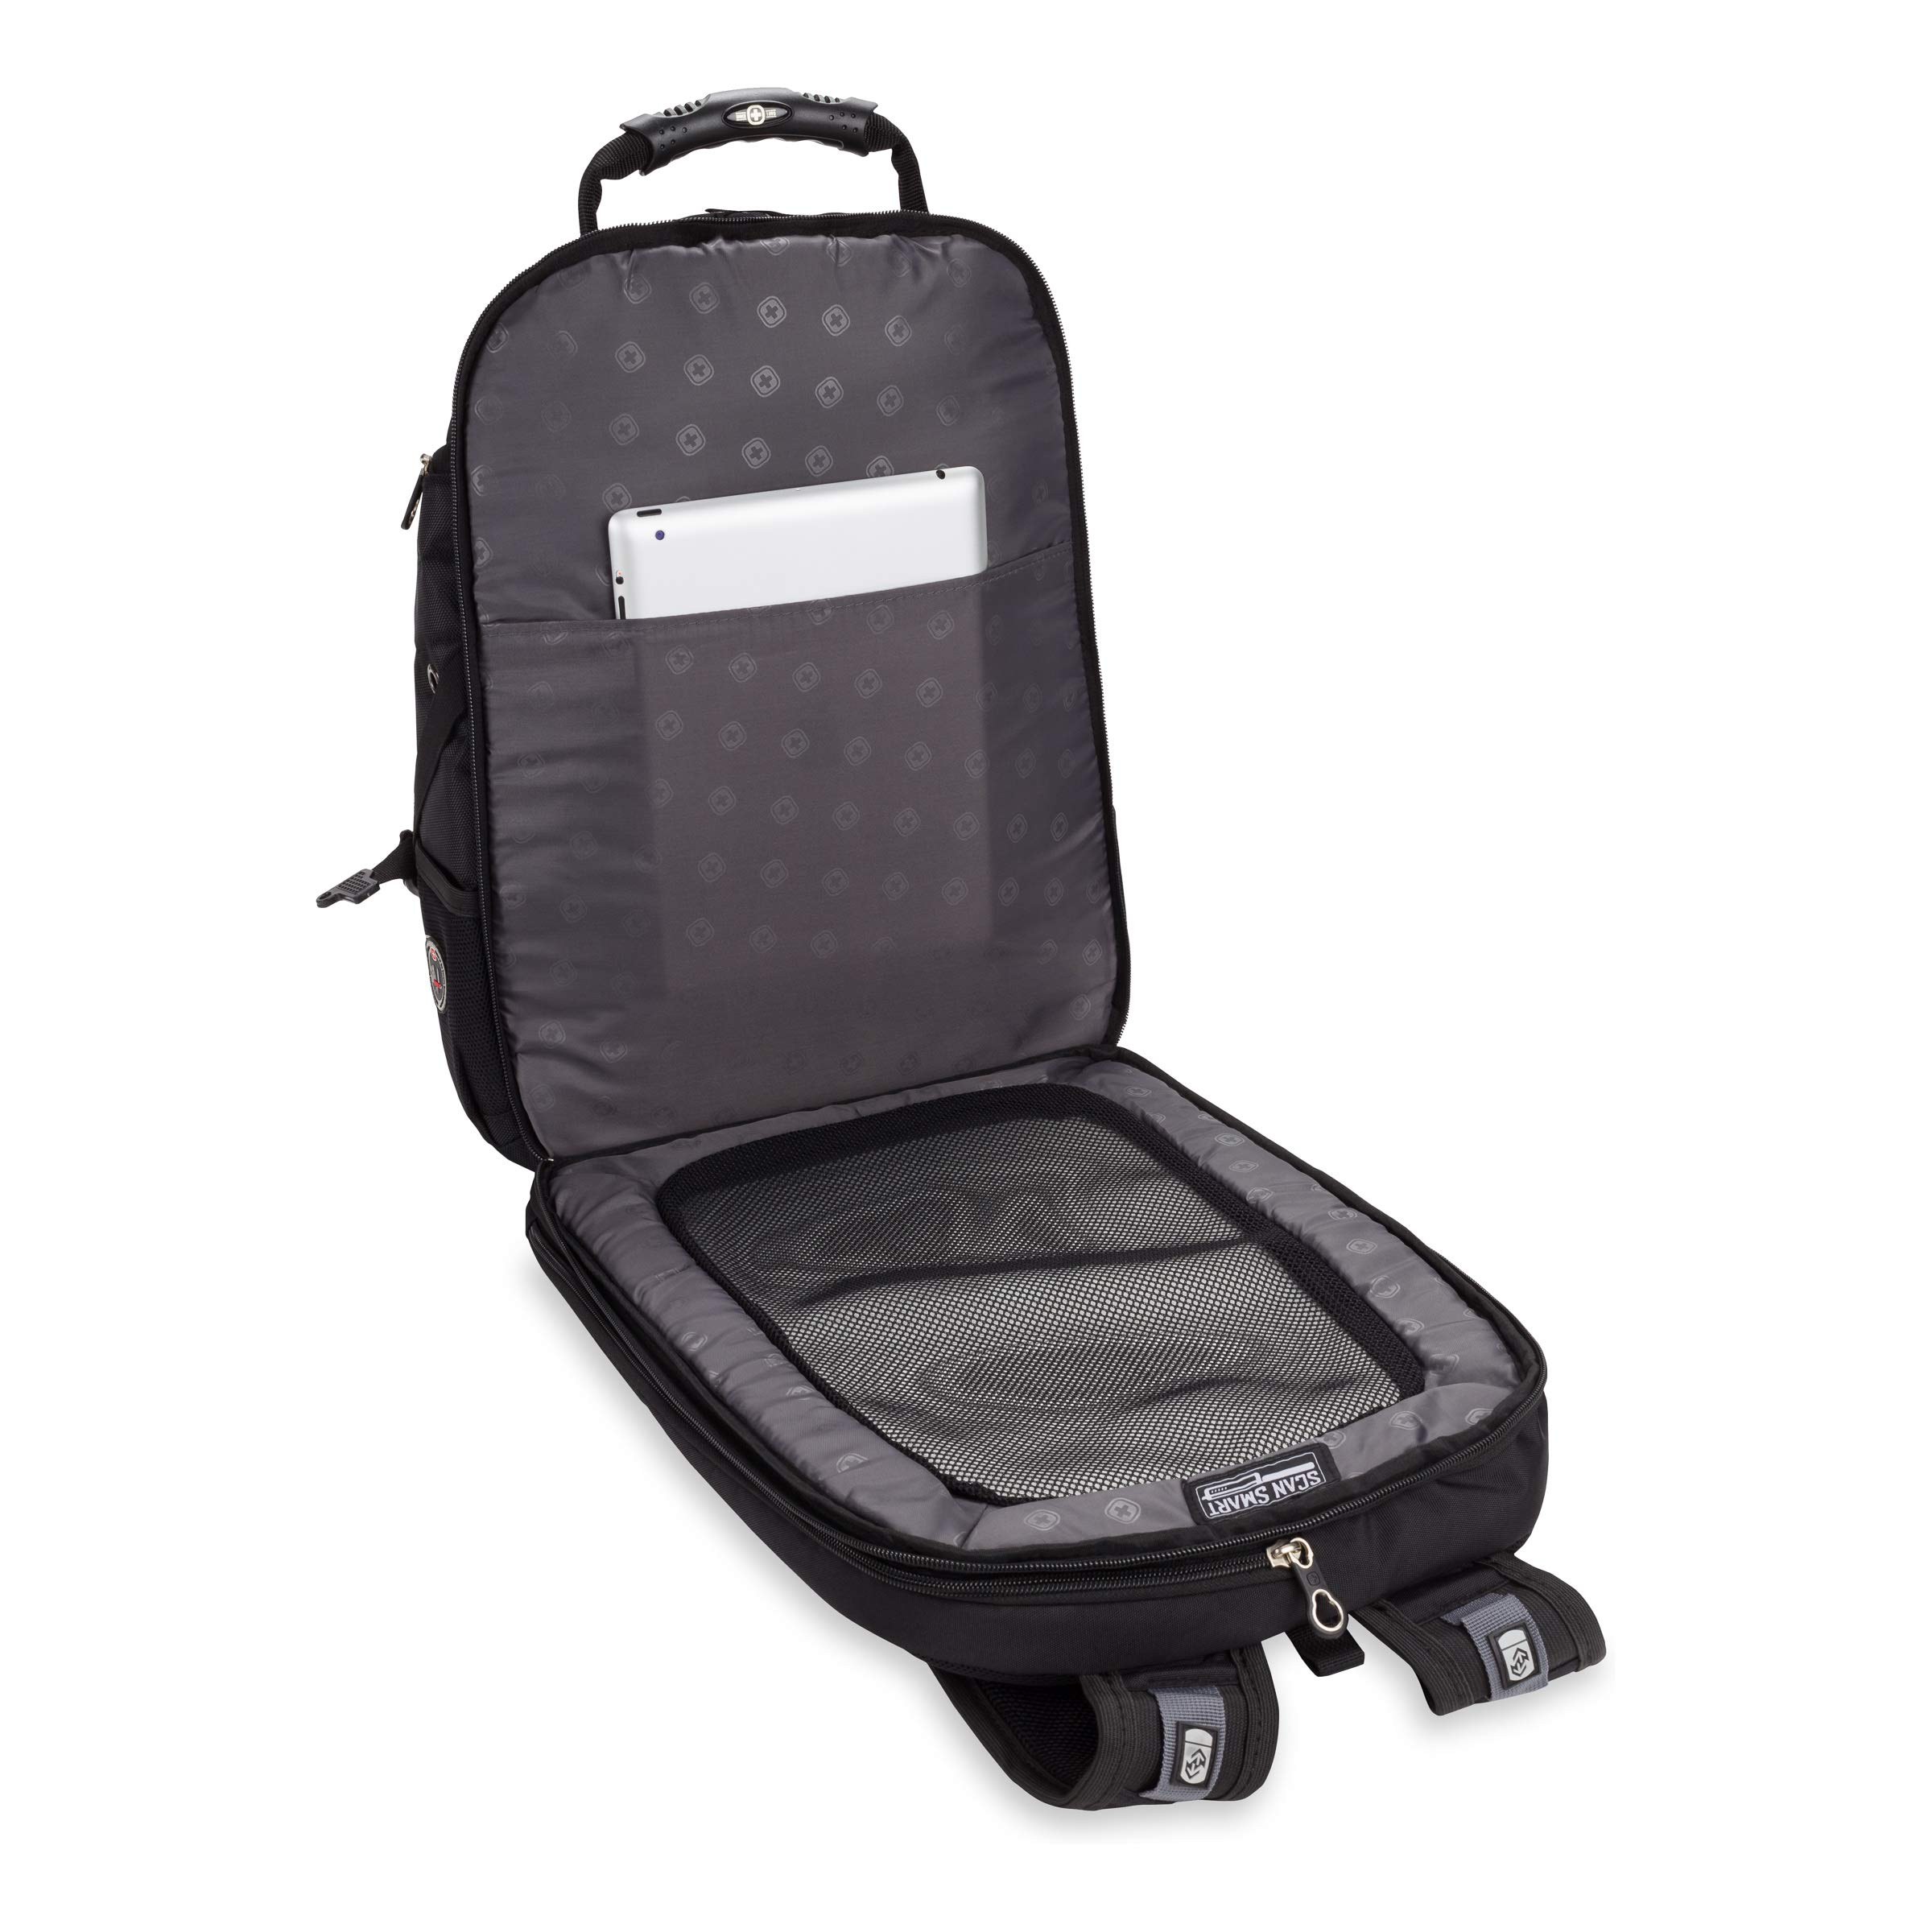 9099b6c5a8e2 Swiss Gear SA1923 Black TSA Friendly ScanSmart Laptop Backpack - Fits Most  15 Inch Laptops and Tablets